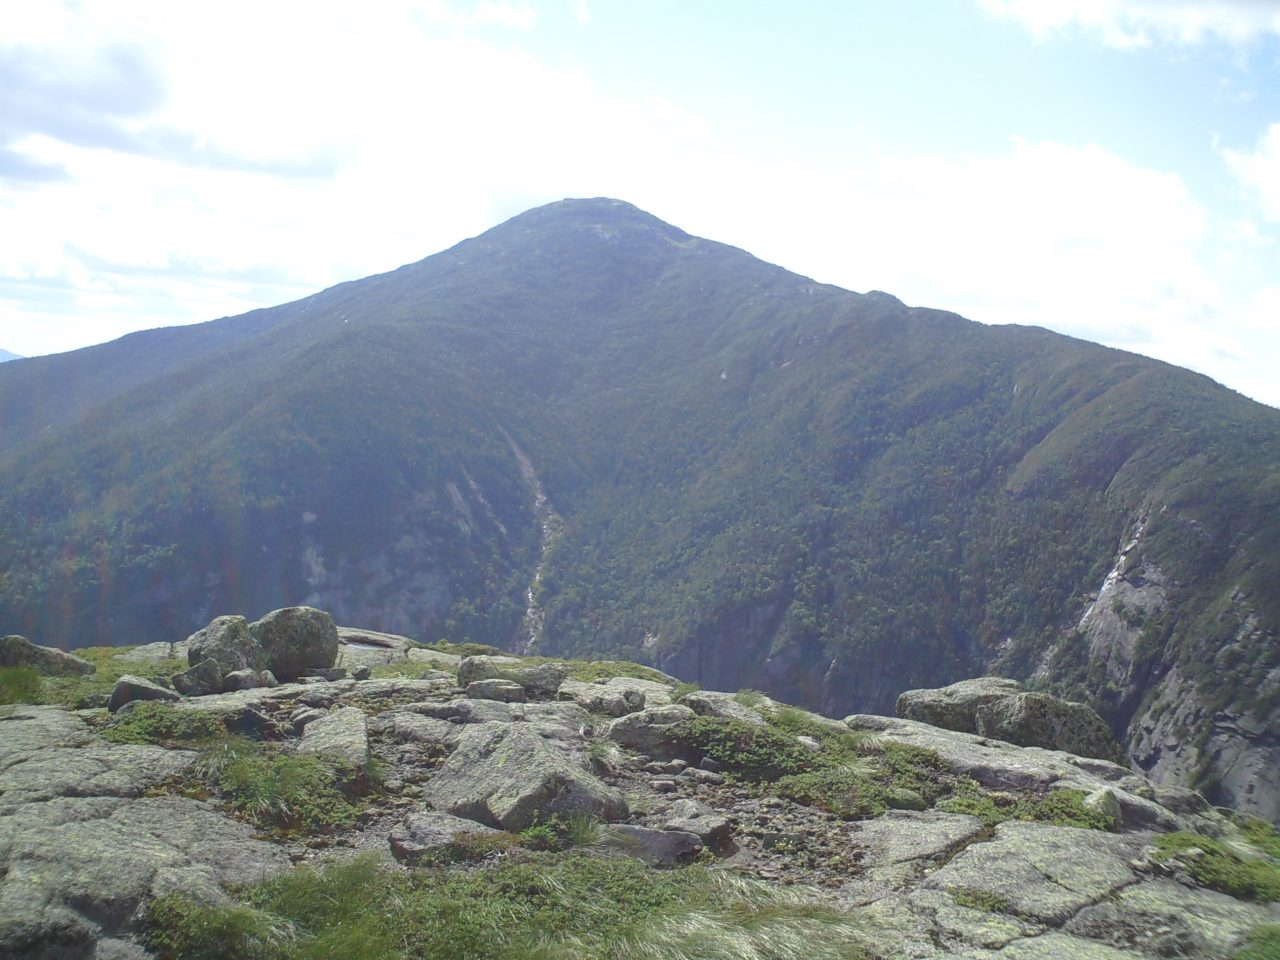 View of Mt. Marcy rising from Panther Gorge